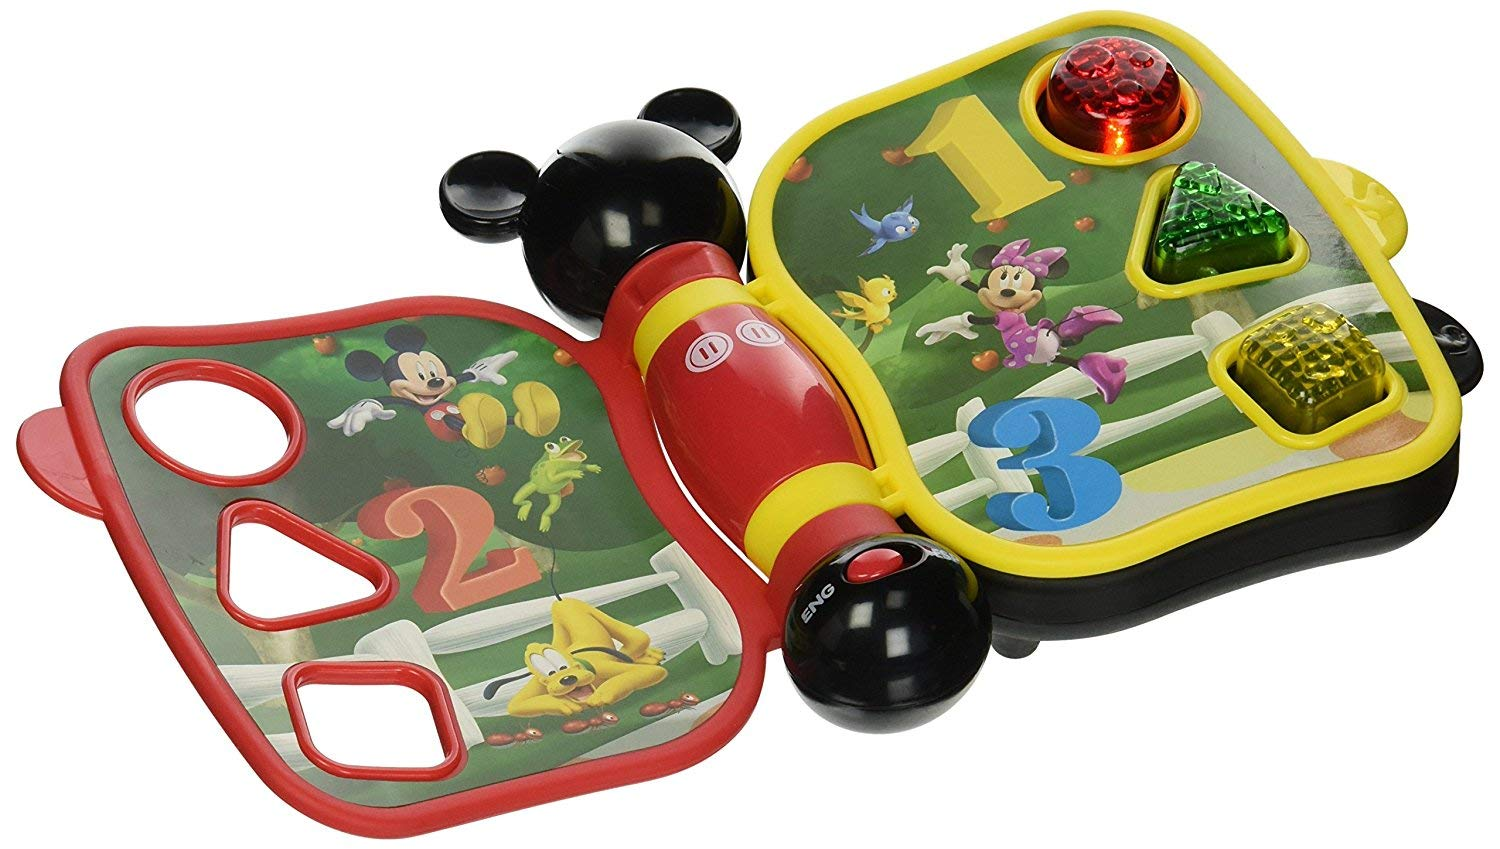 Mickey Mouse Mickey/'s Push and Go Racer Vehicle Bundle Mickeys Push and Go Racer Vehicle Bundle 2 Items Mickeys My First Learning Book Lights and Sounds Mickey/'s My First Learning Book Lights and Sounds 2 Items